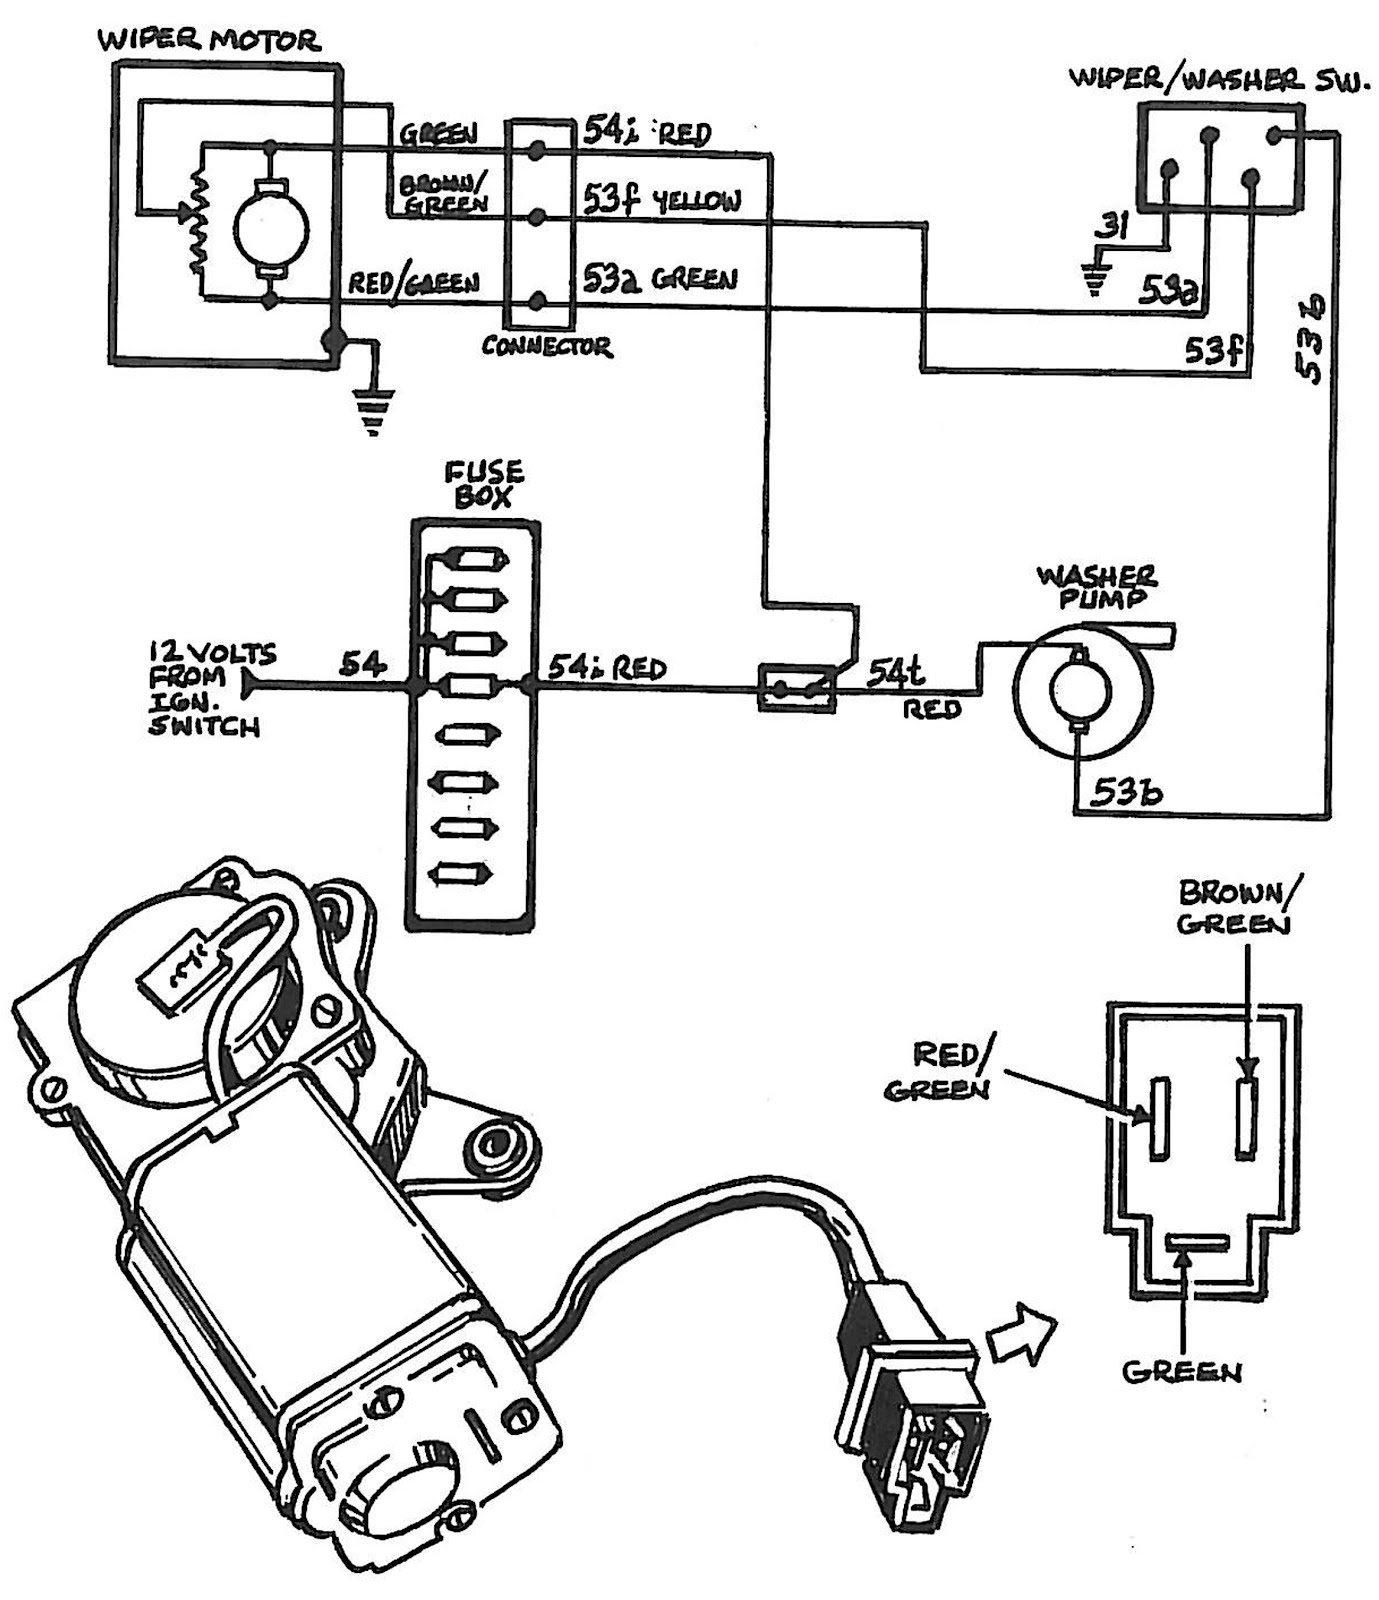 chevy wiper motor wiring diagram trucks cars 65 ford chevy wiper motor wiring saab journal: early windshield wiper motor rebuild